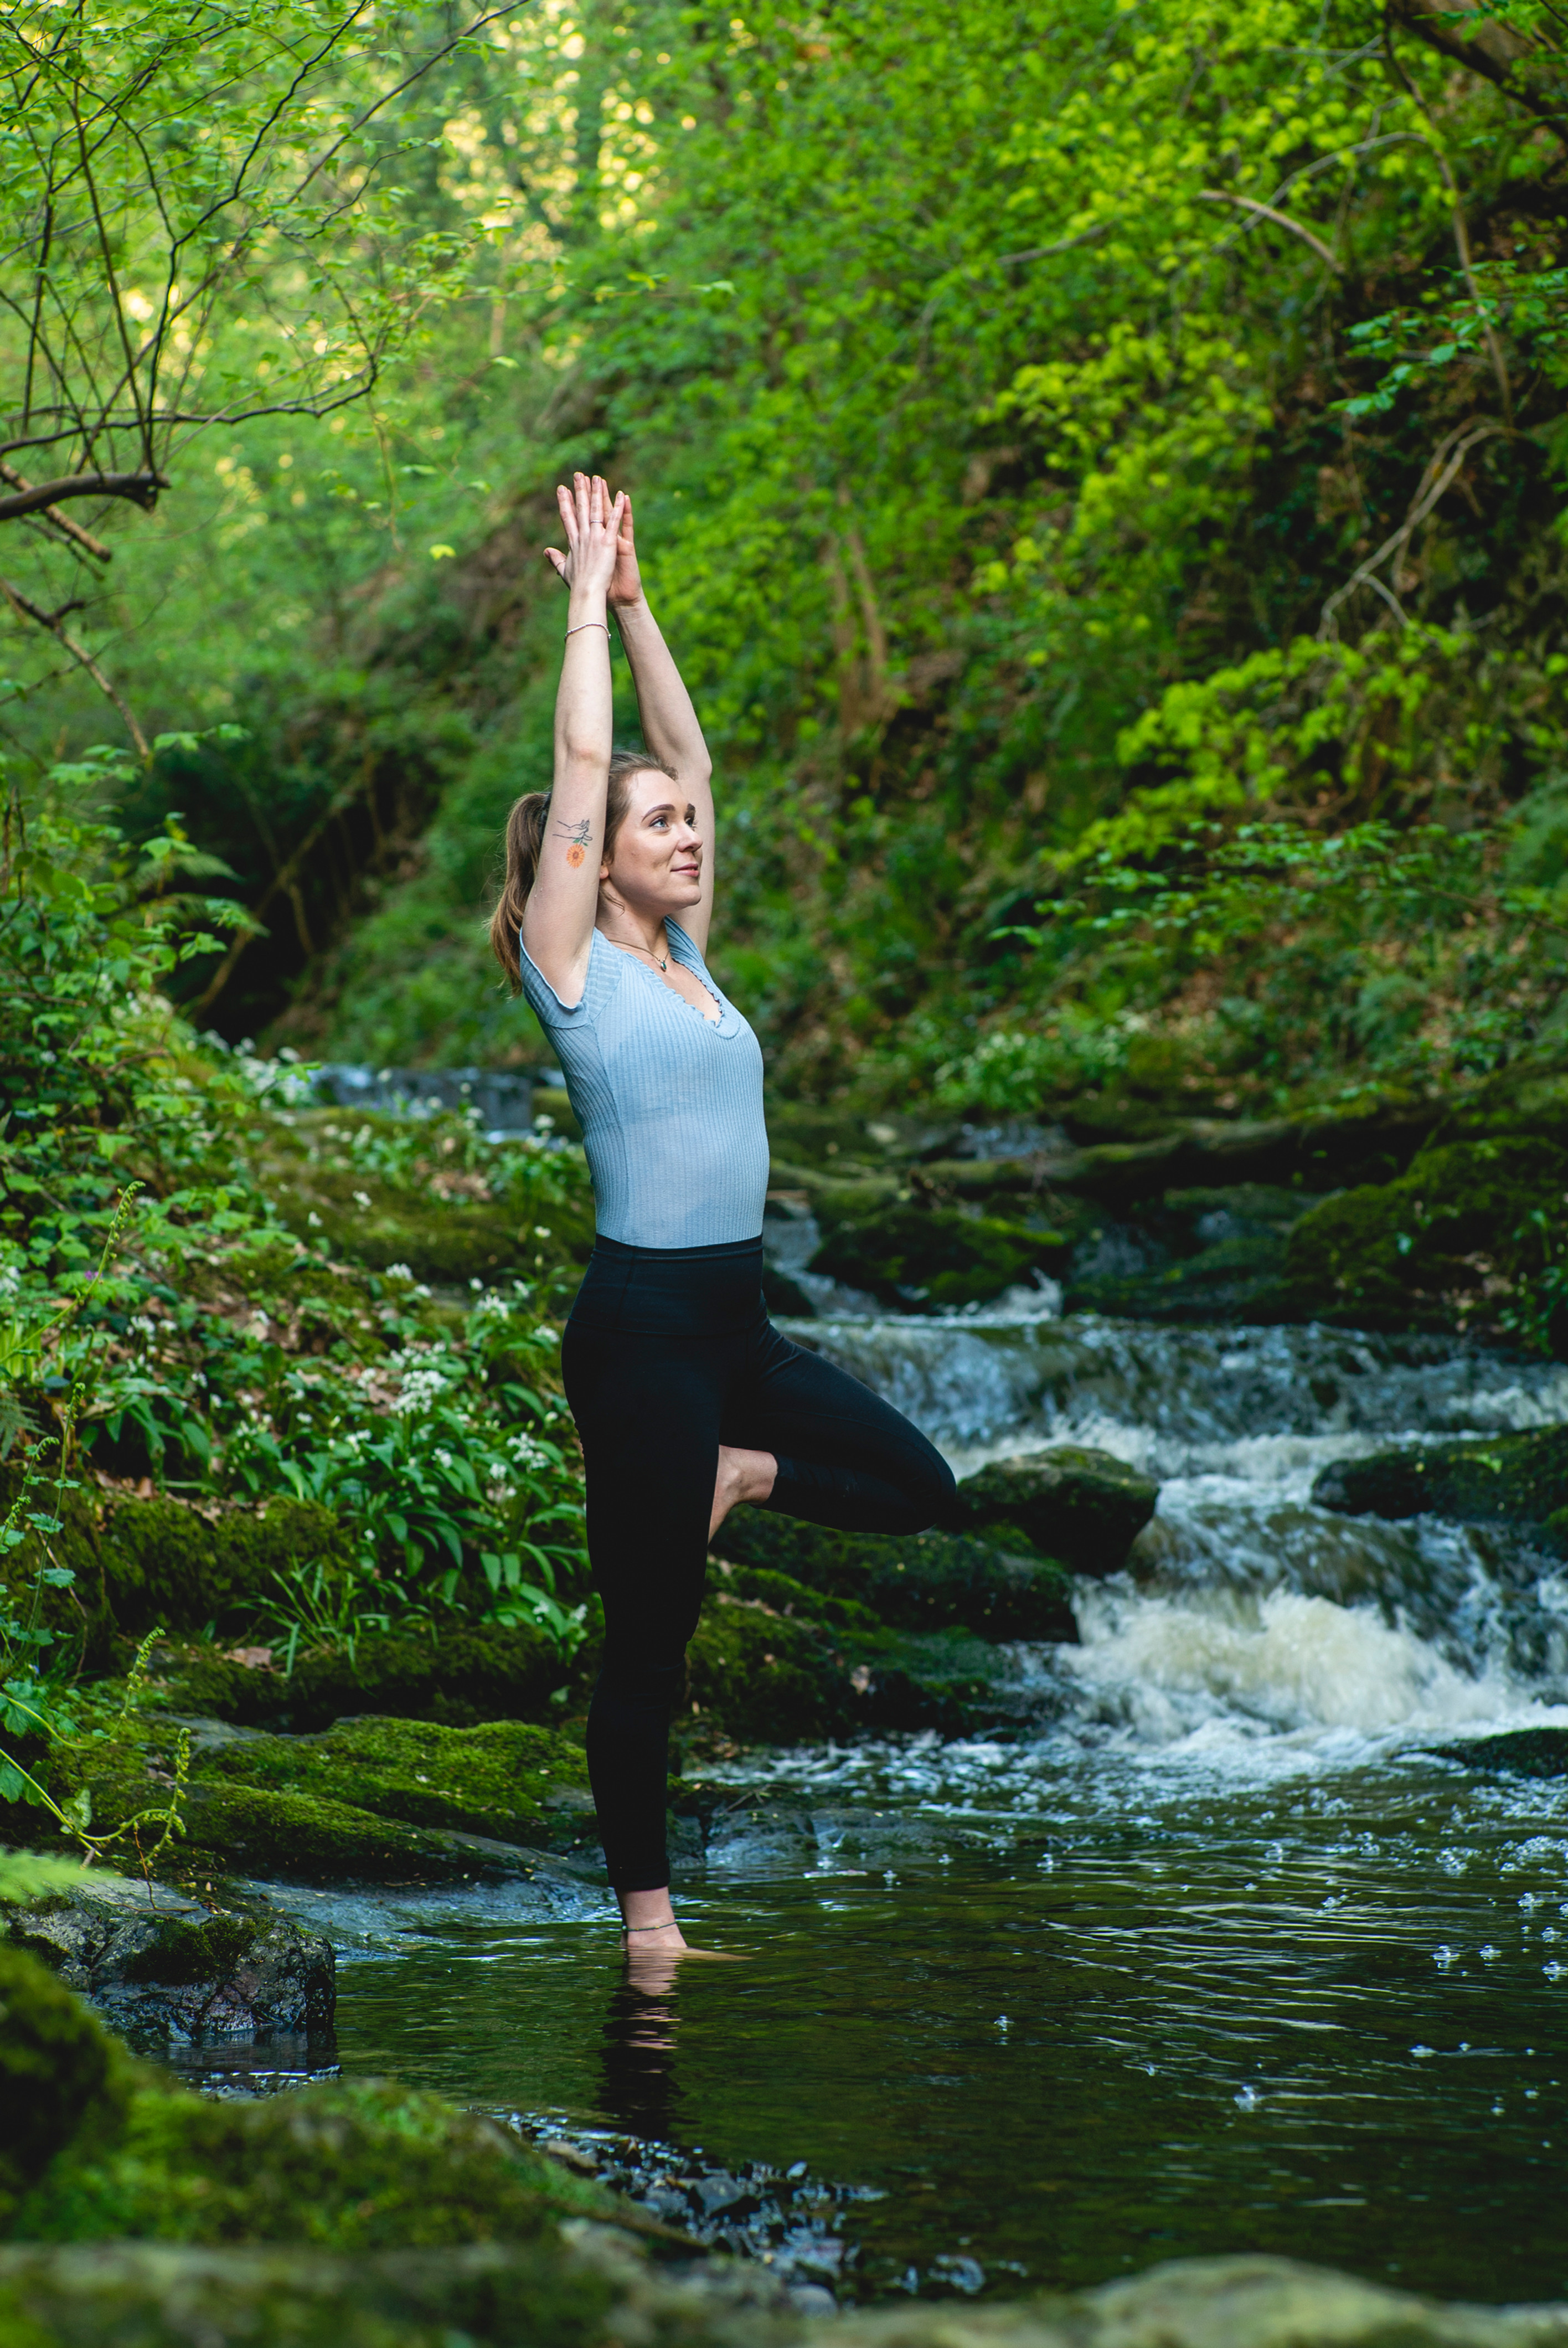 1 hour yoga (Ages 13+)